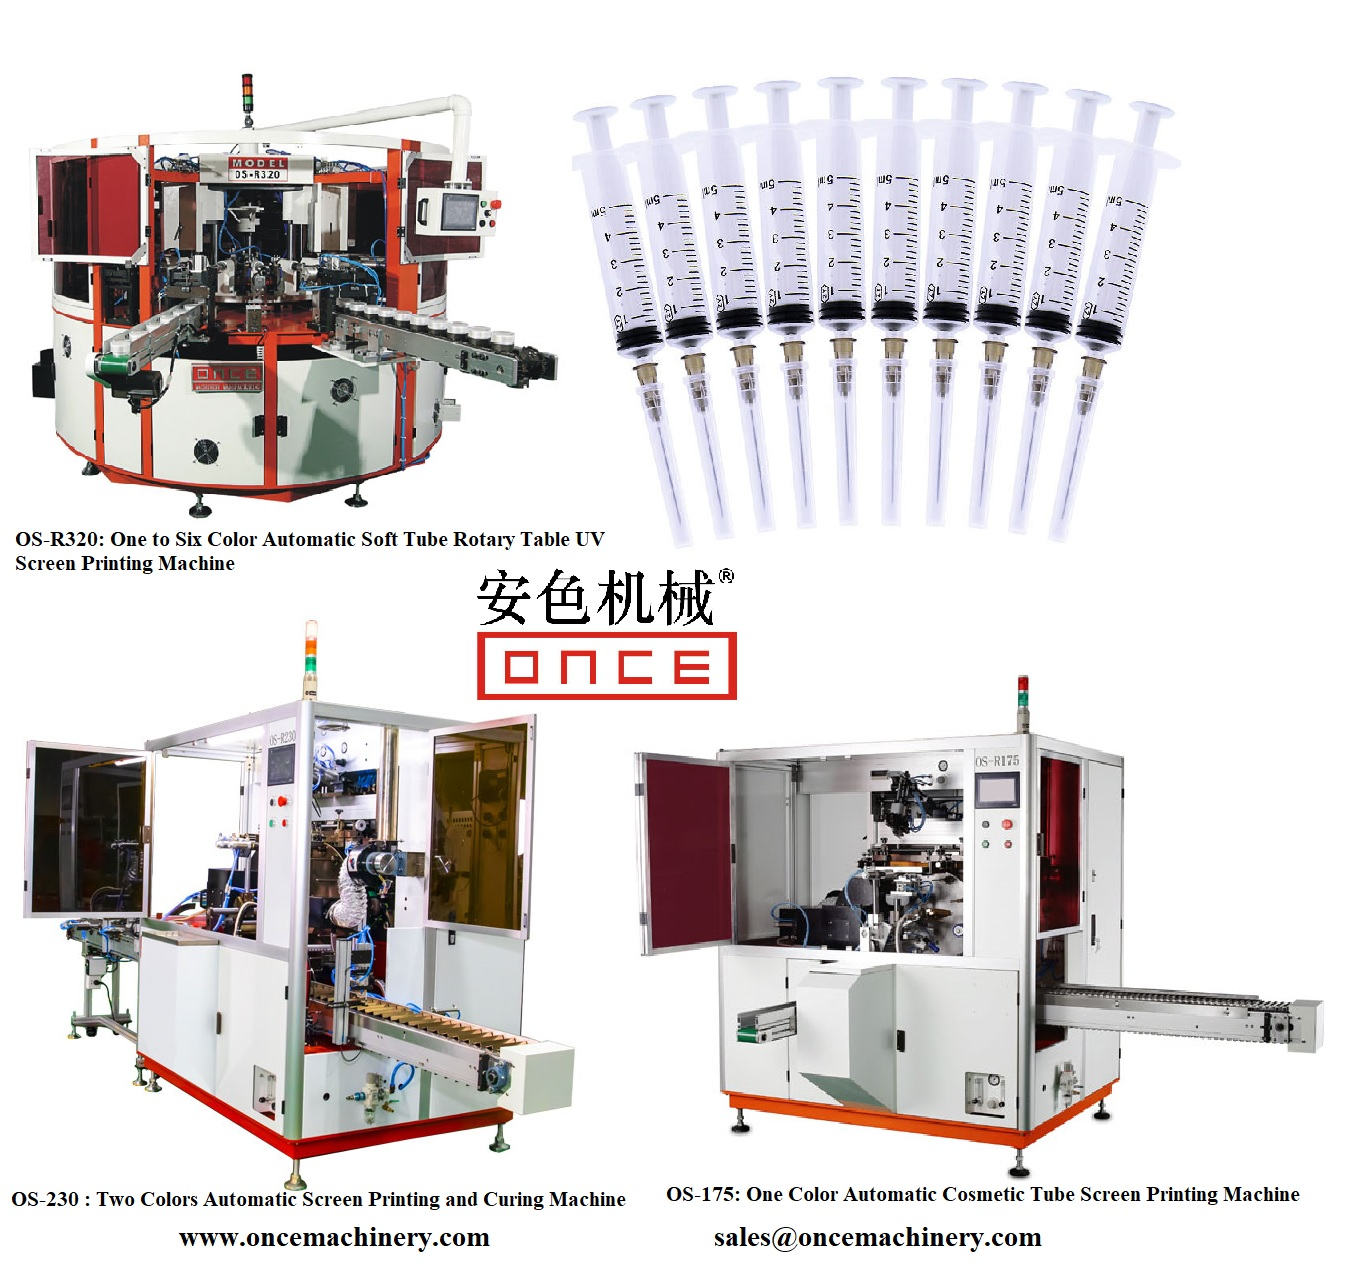 Huayu Automation Manufacture Automatic Screen Printing Machines for Syringe